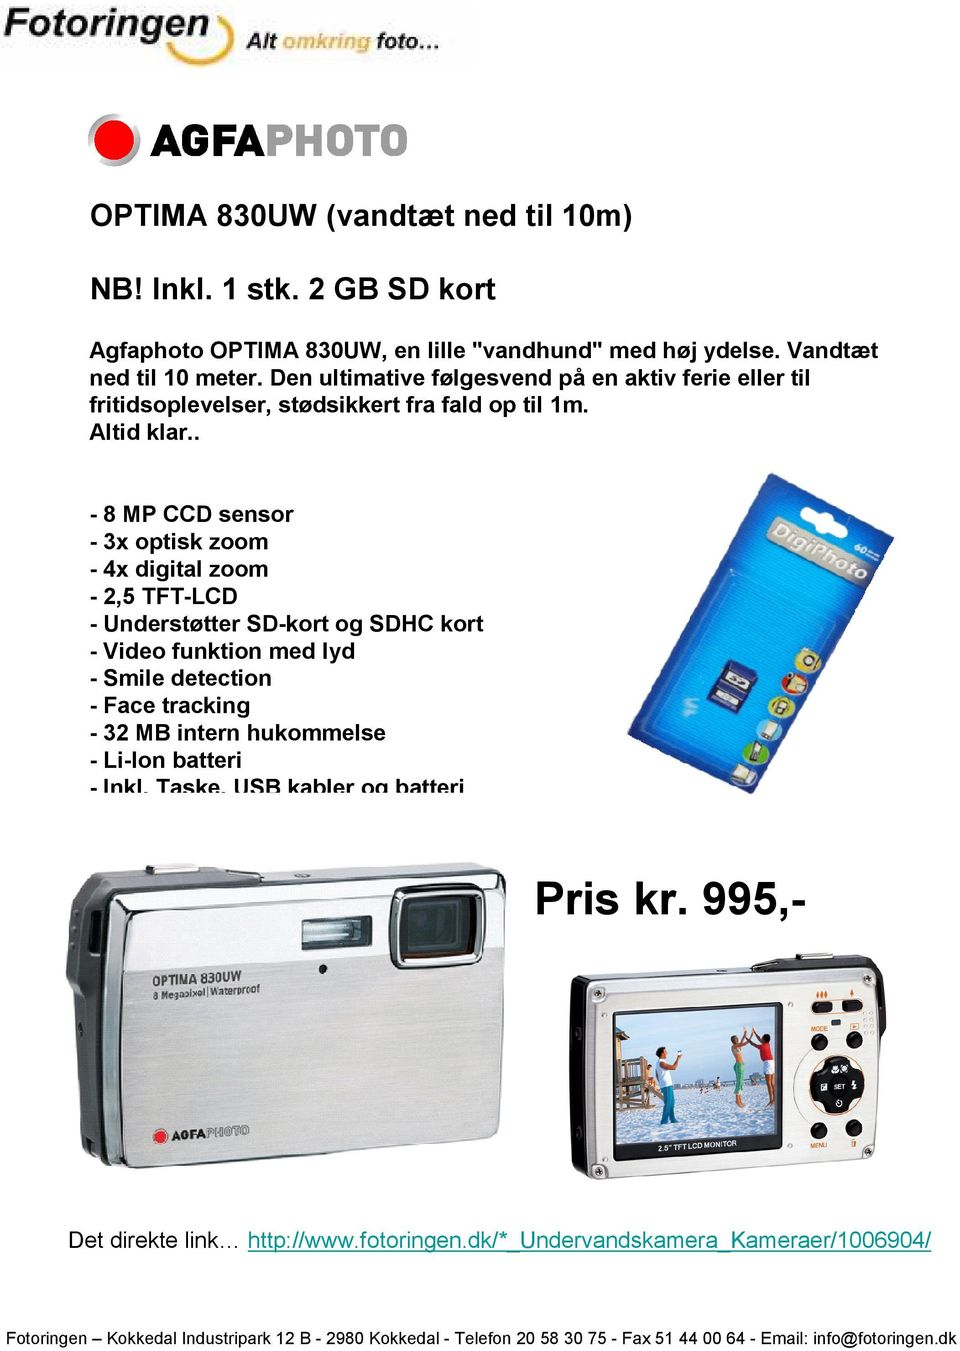 . - 8 MP CCD sensor - 3x optisk zoom - 4x digital zoom - 2,5 TFT-LCD - Understøtter SD-kort og SDHC kort - Video funktion med lyd - Smile detection -